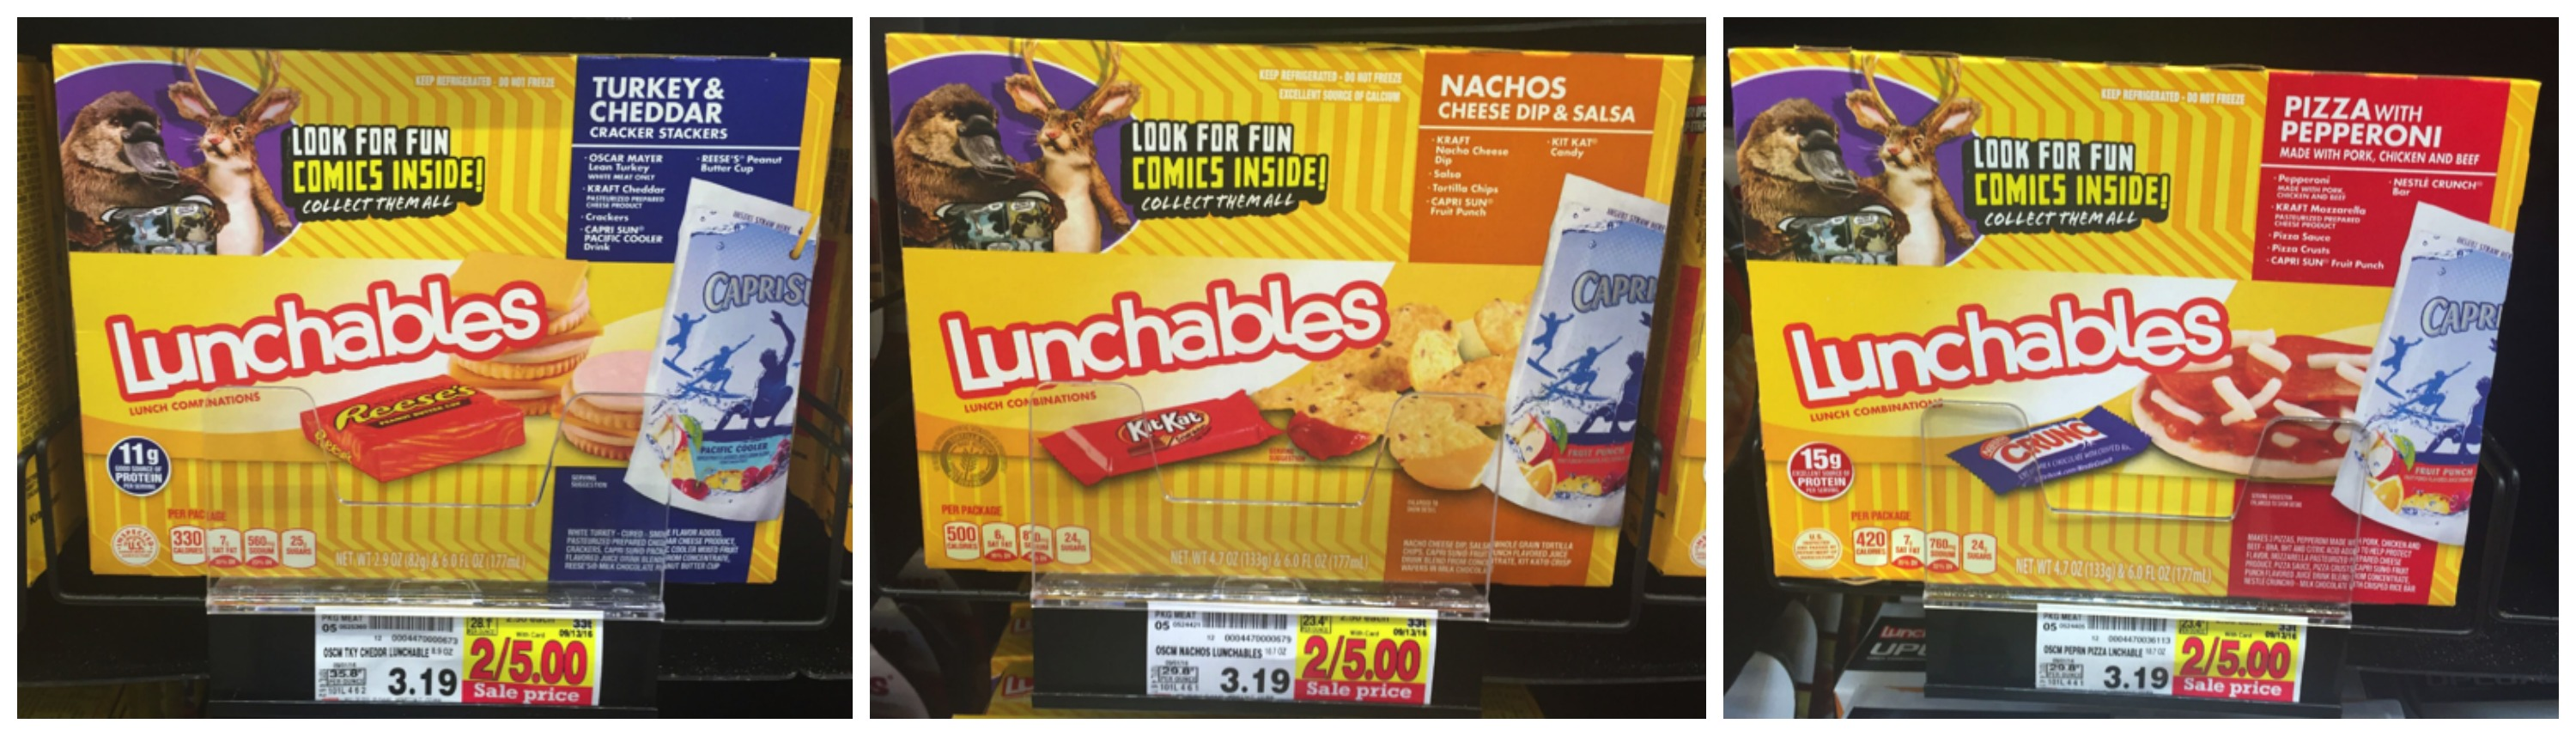 oscar-mayer-lunchables-collage